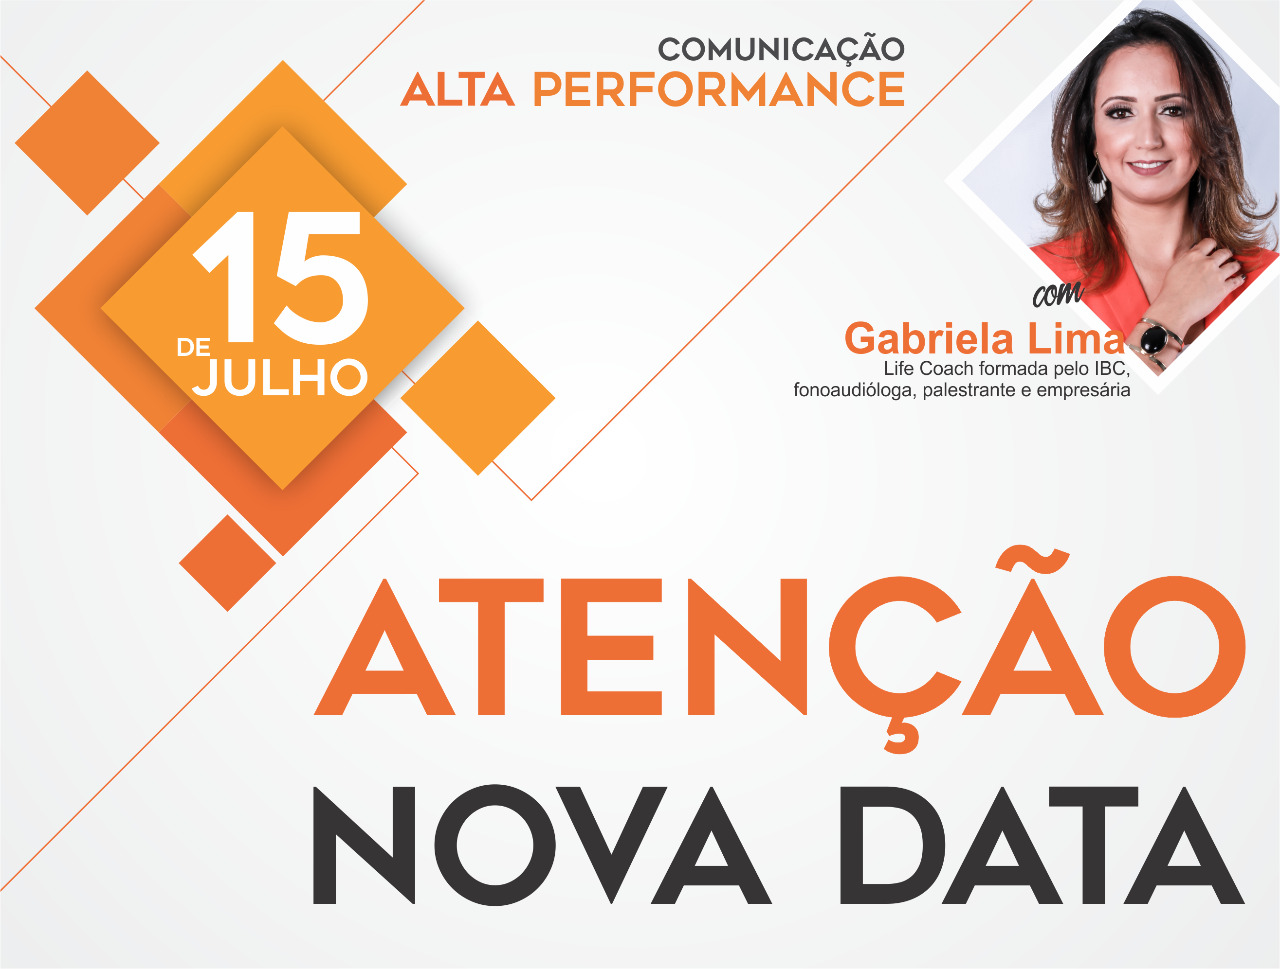 NOVA DATA - Workshop de comunicação com Gabriela Lima